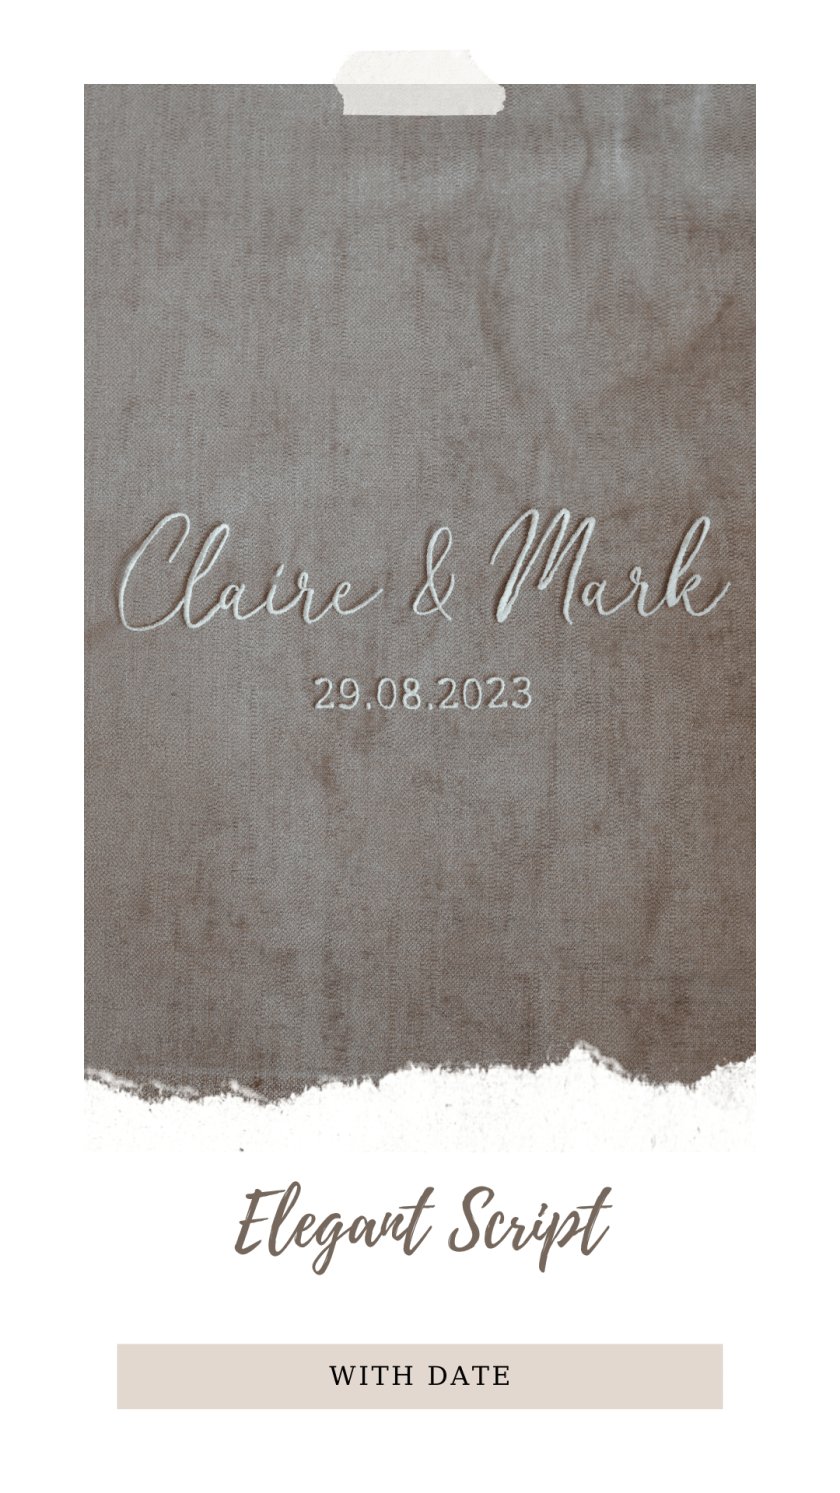 Personalised veil embroidery - names text - elegant font with date